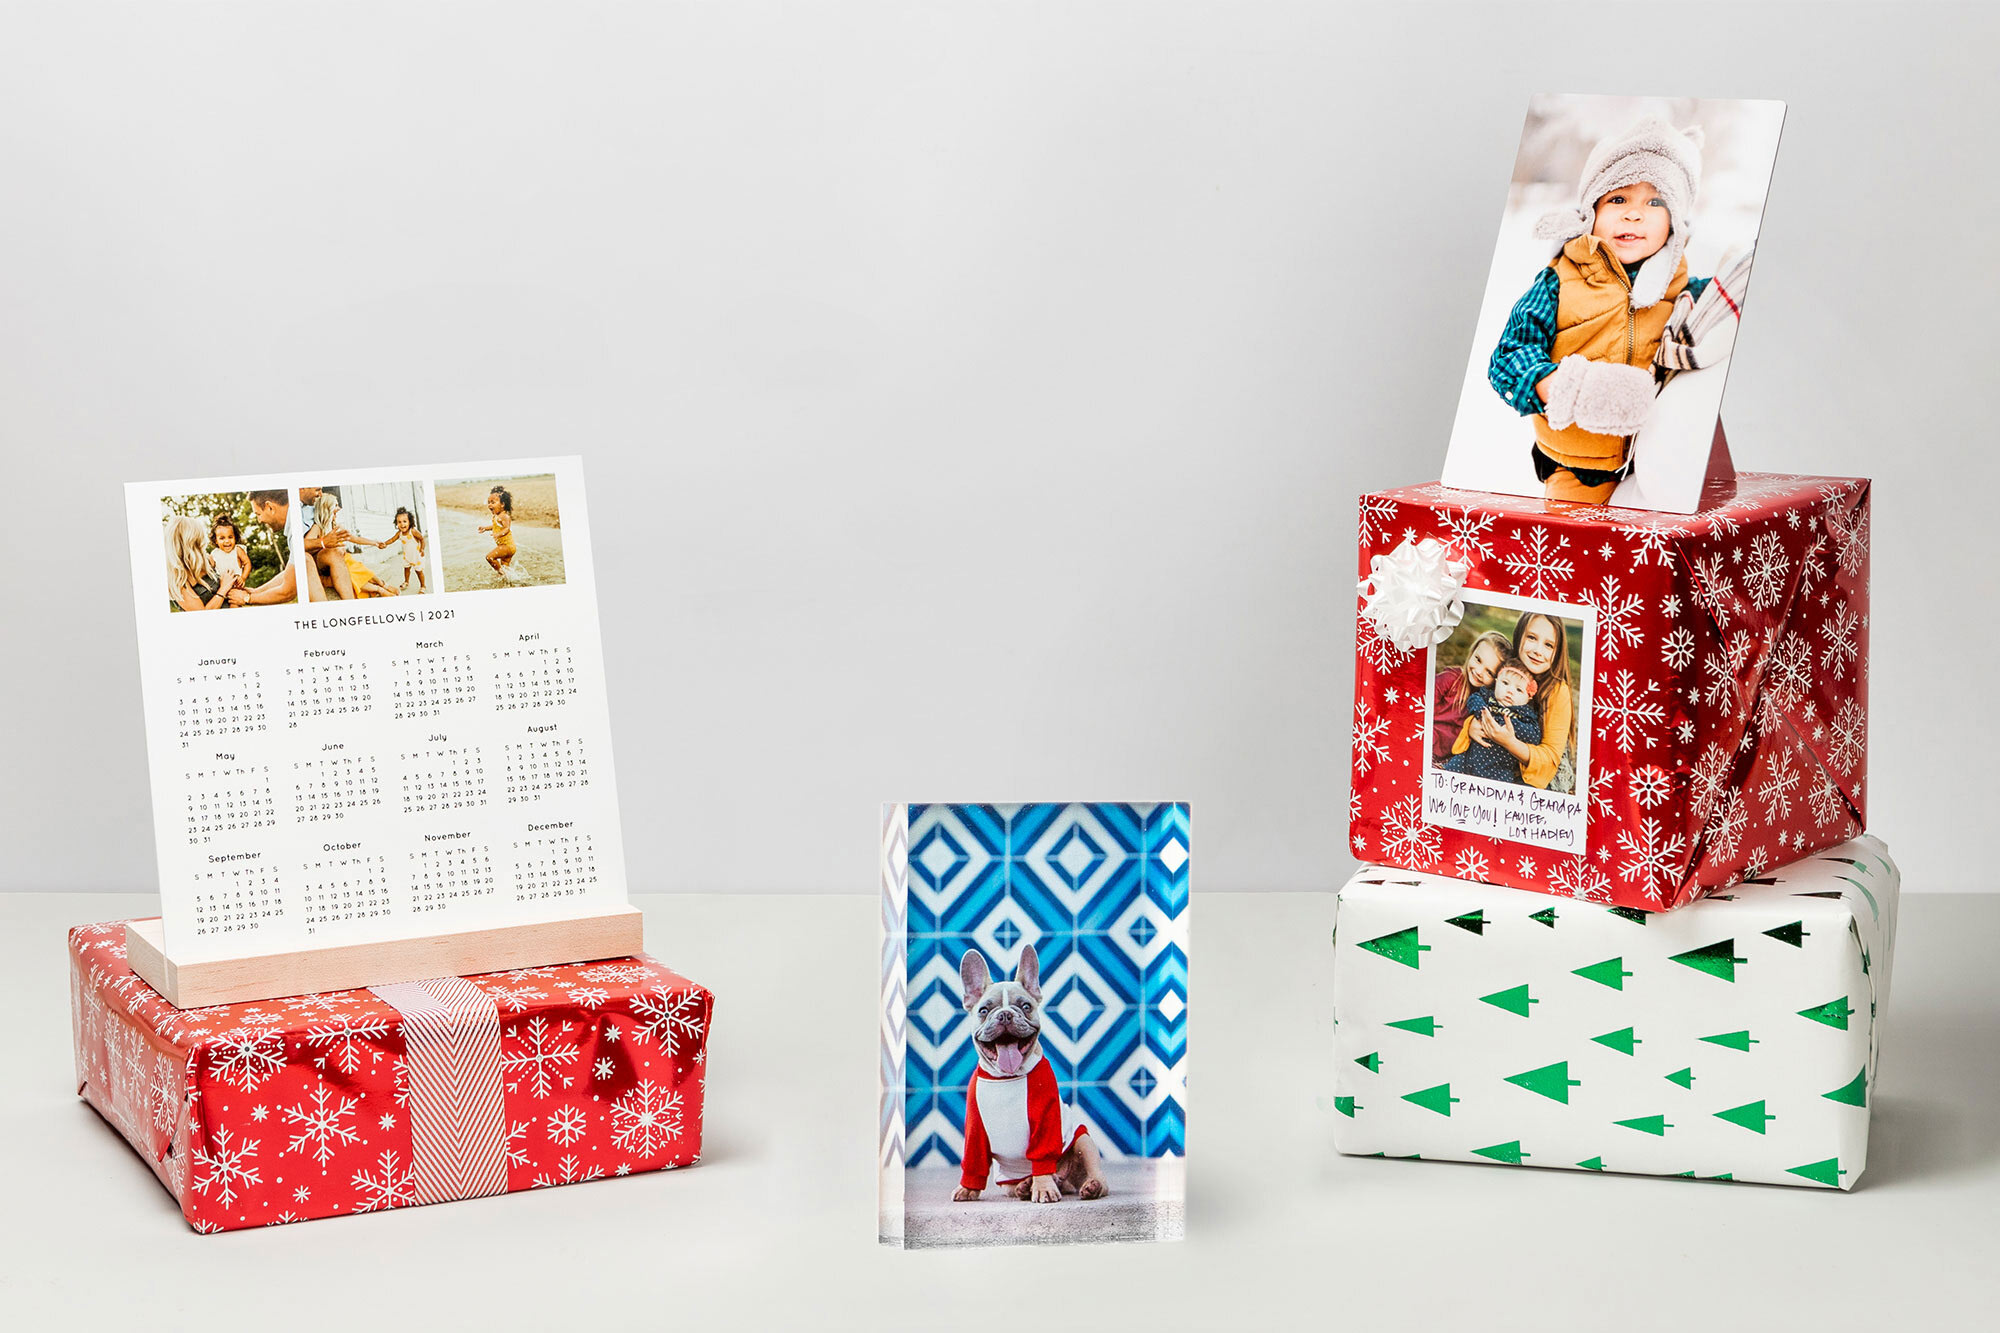 Check out our 6 client gift ideas that you can customize + order in minutes!